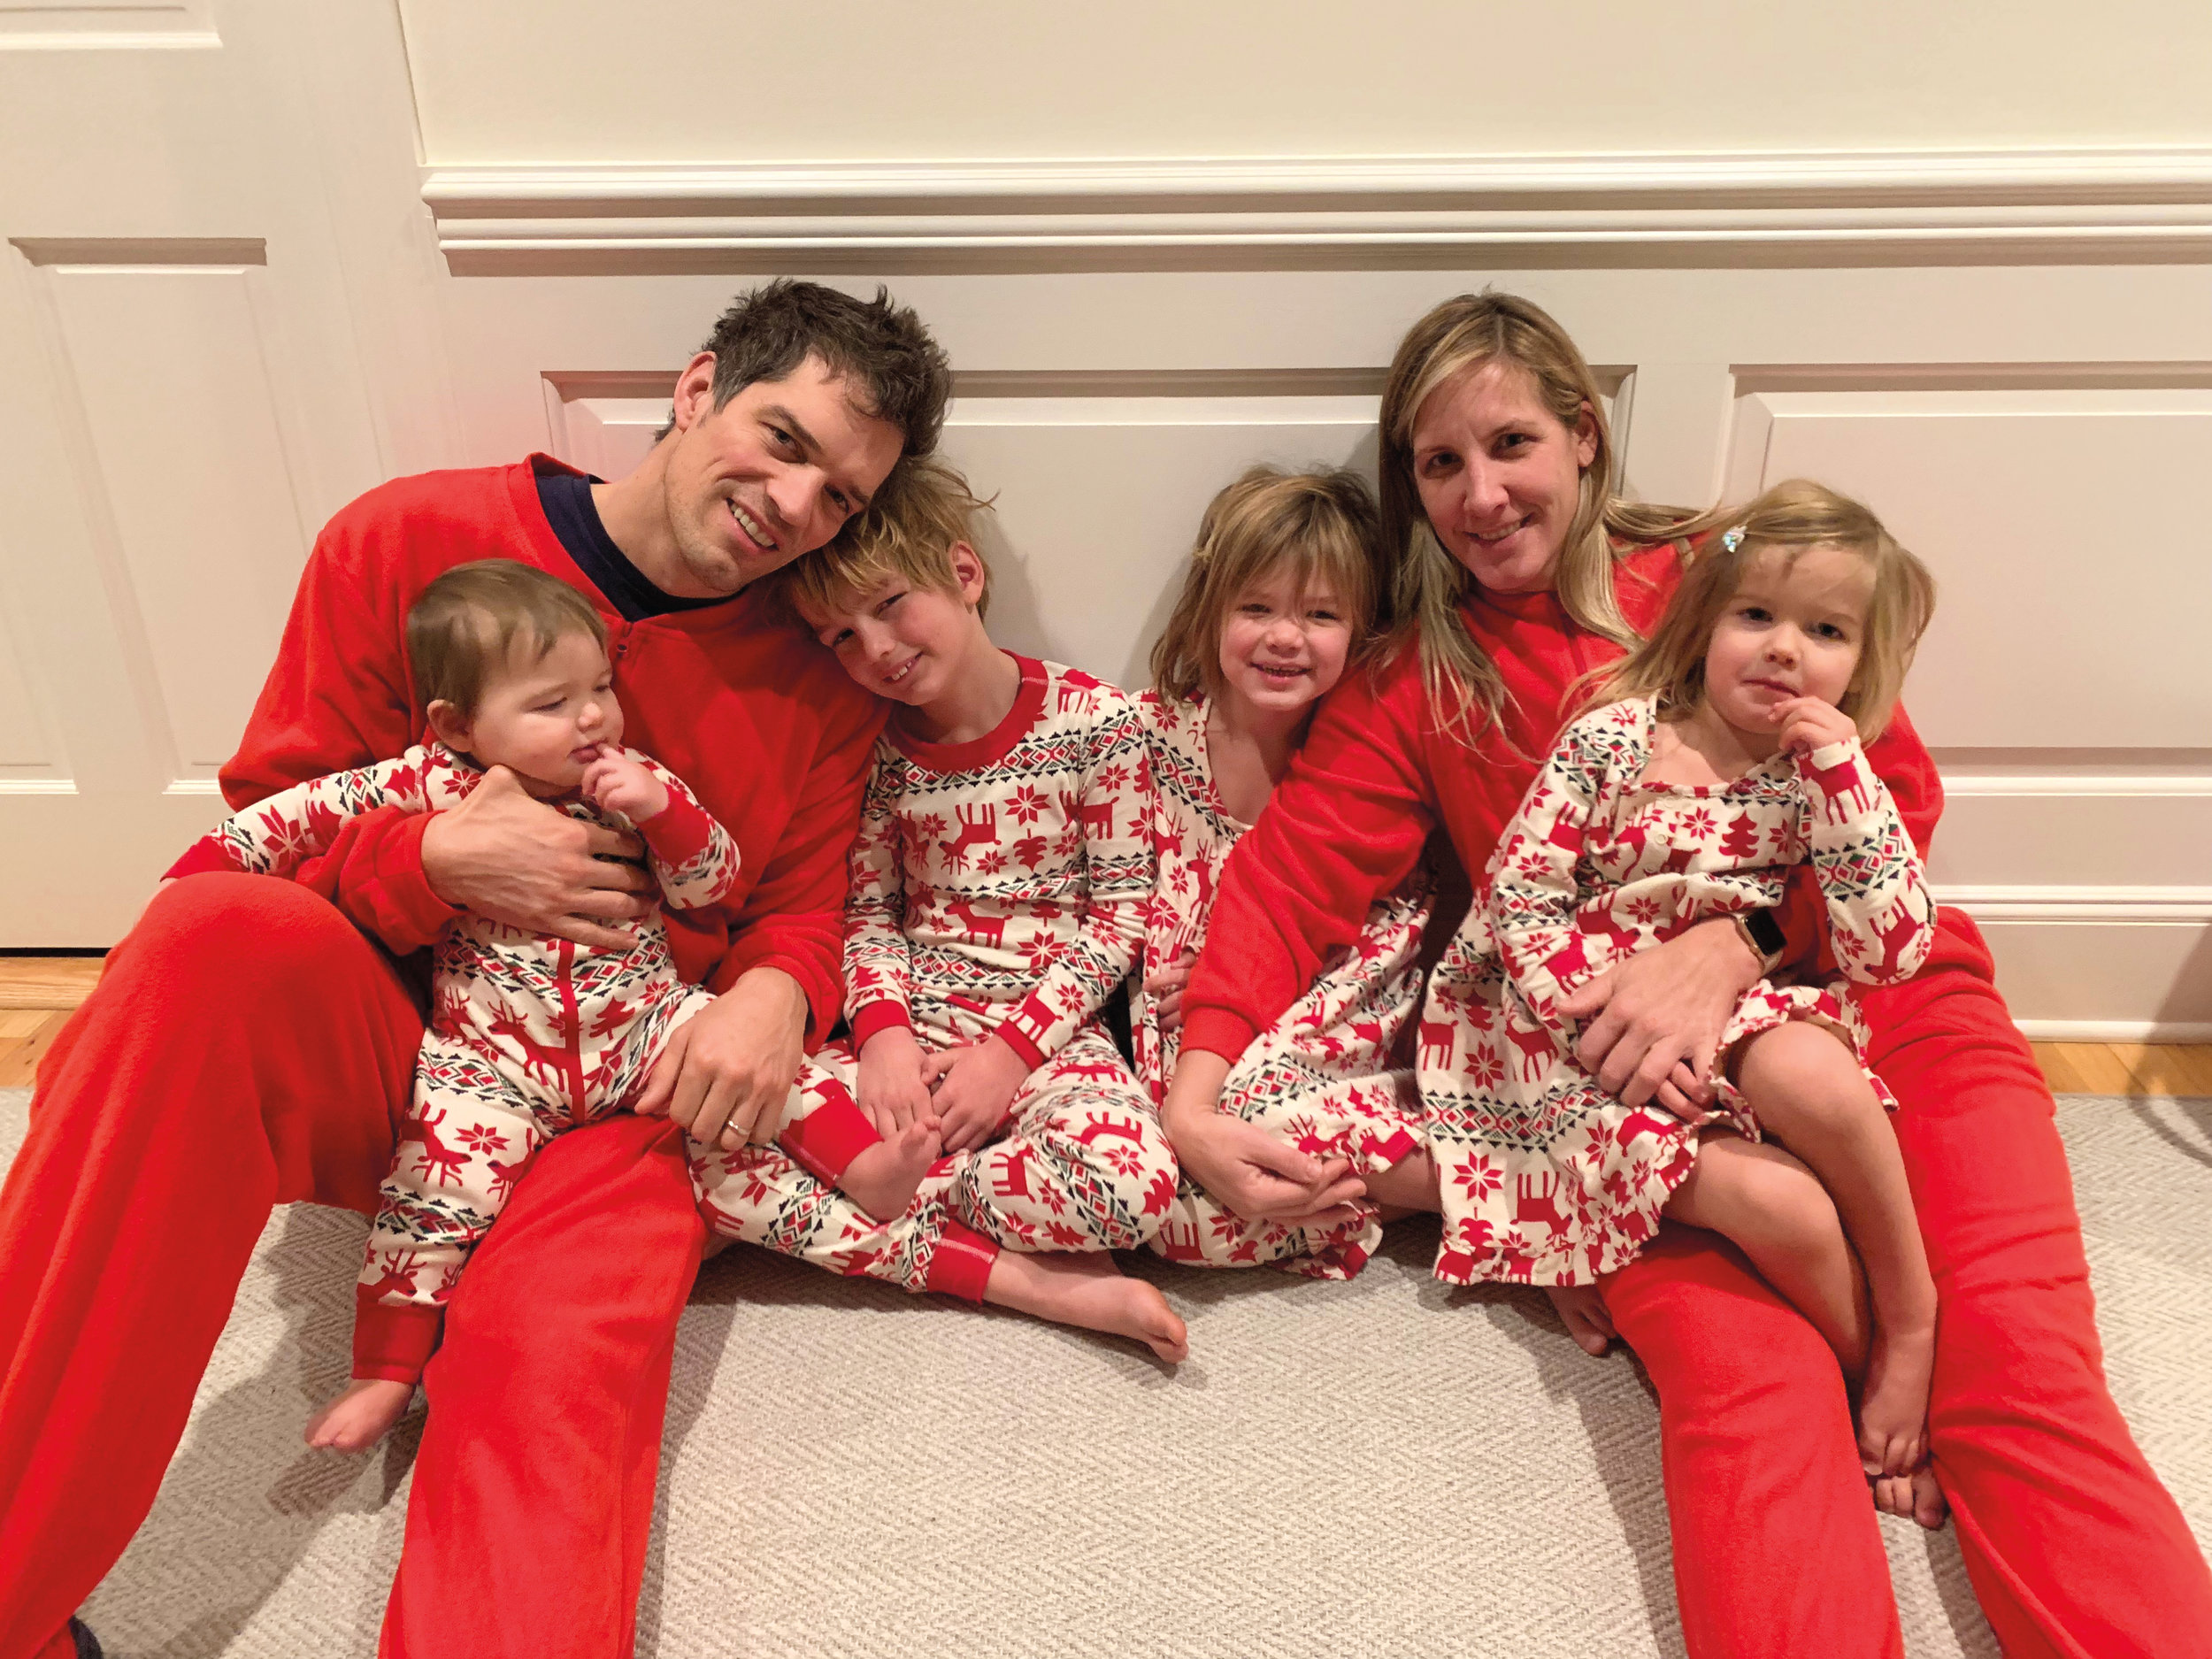 Conner McGee '98 with his wife, Kate, and kids, Jamie (7), Alex (5), Casey (3), and Luke (1).